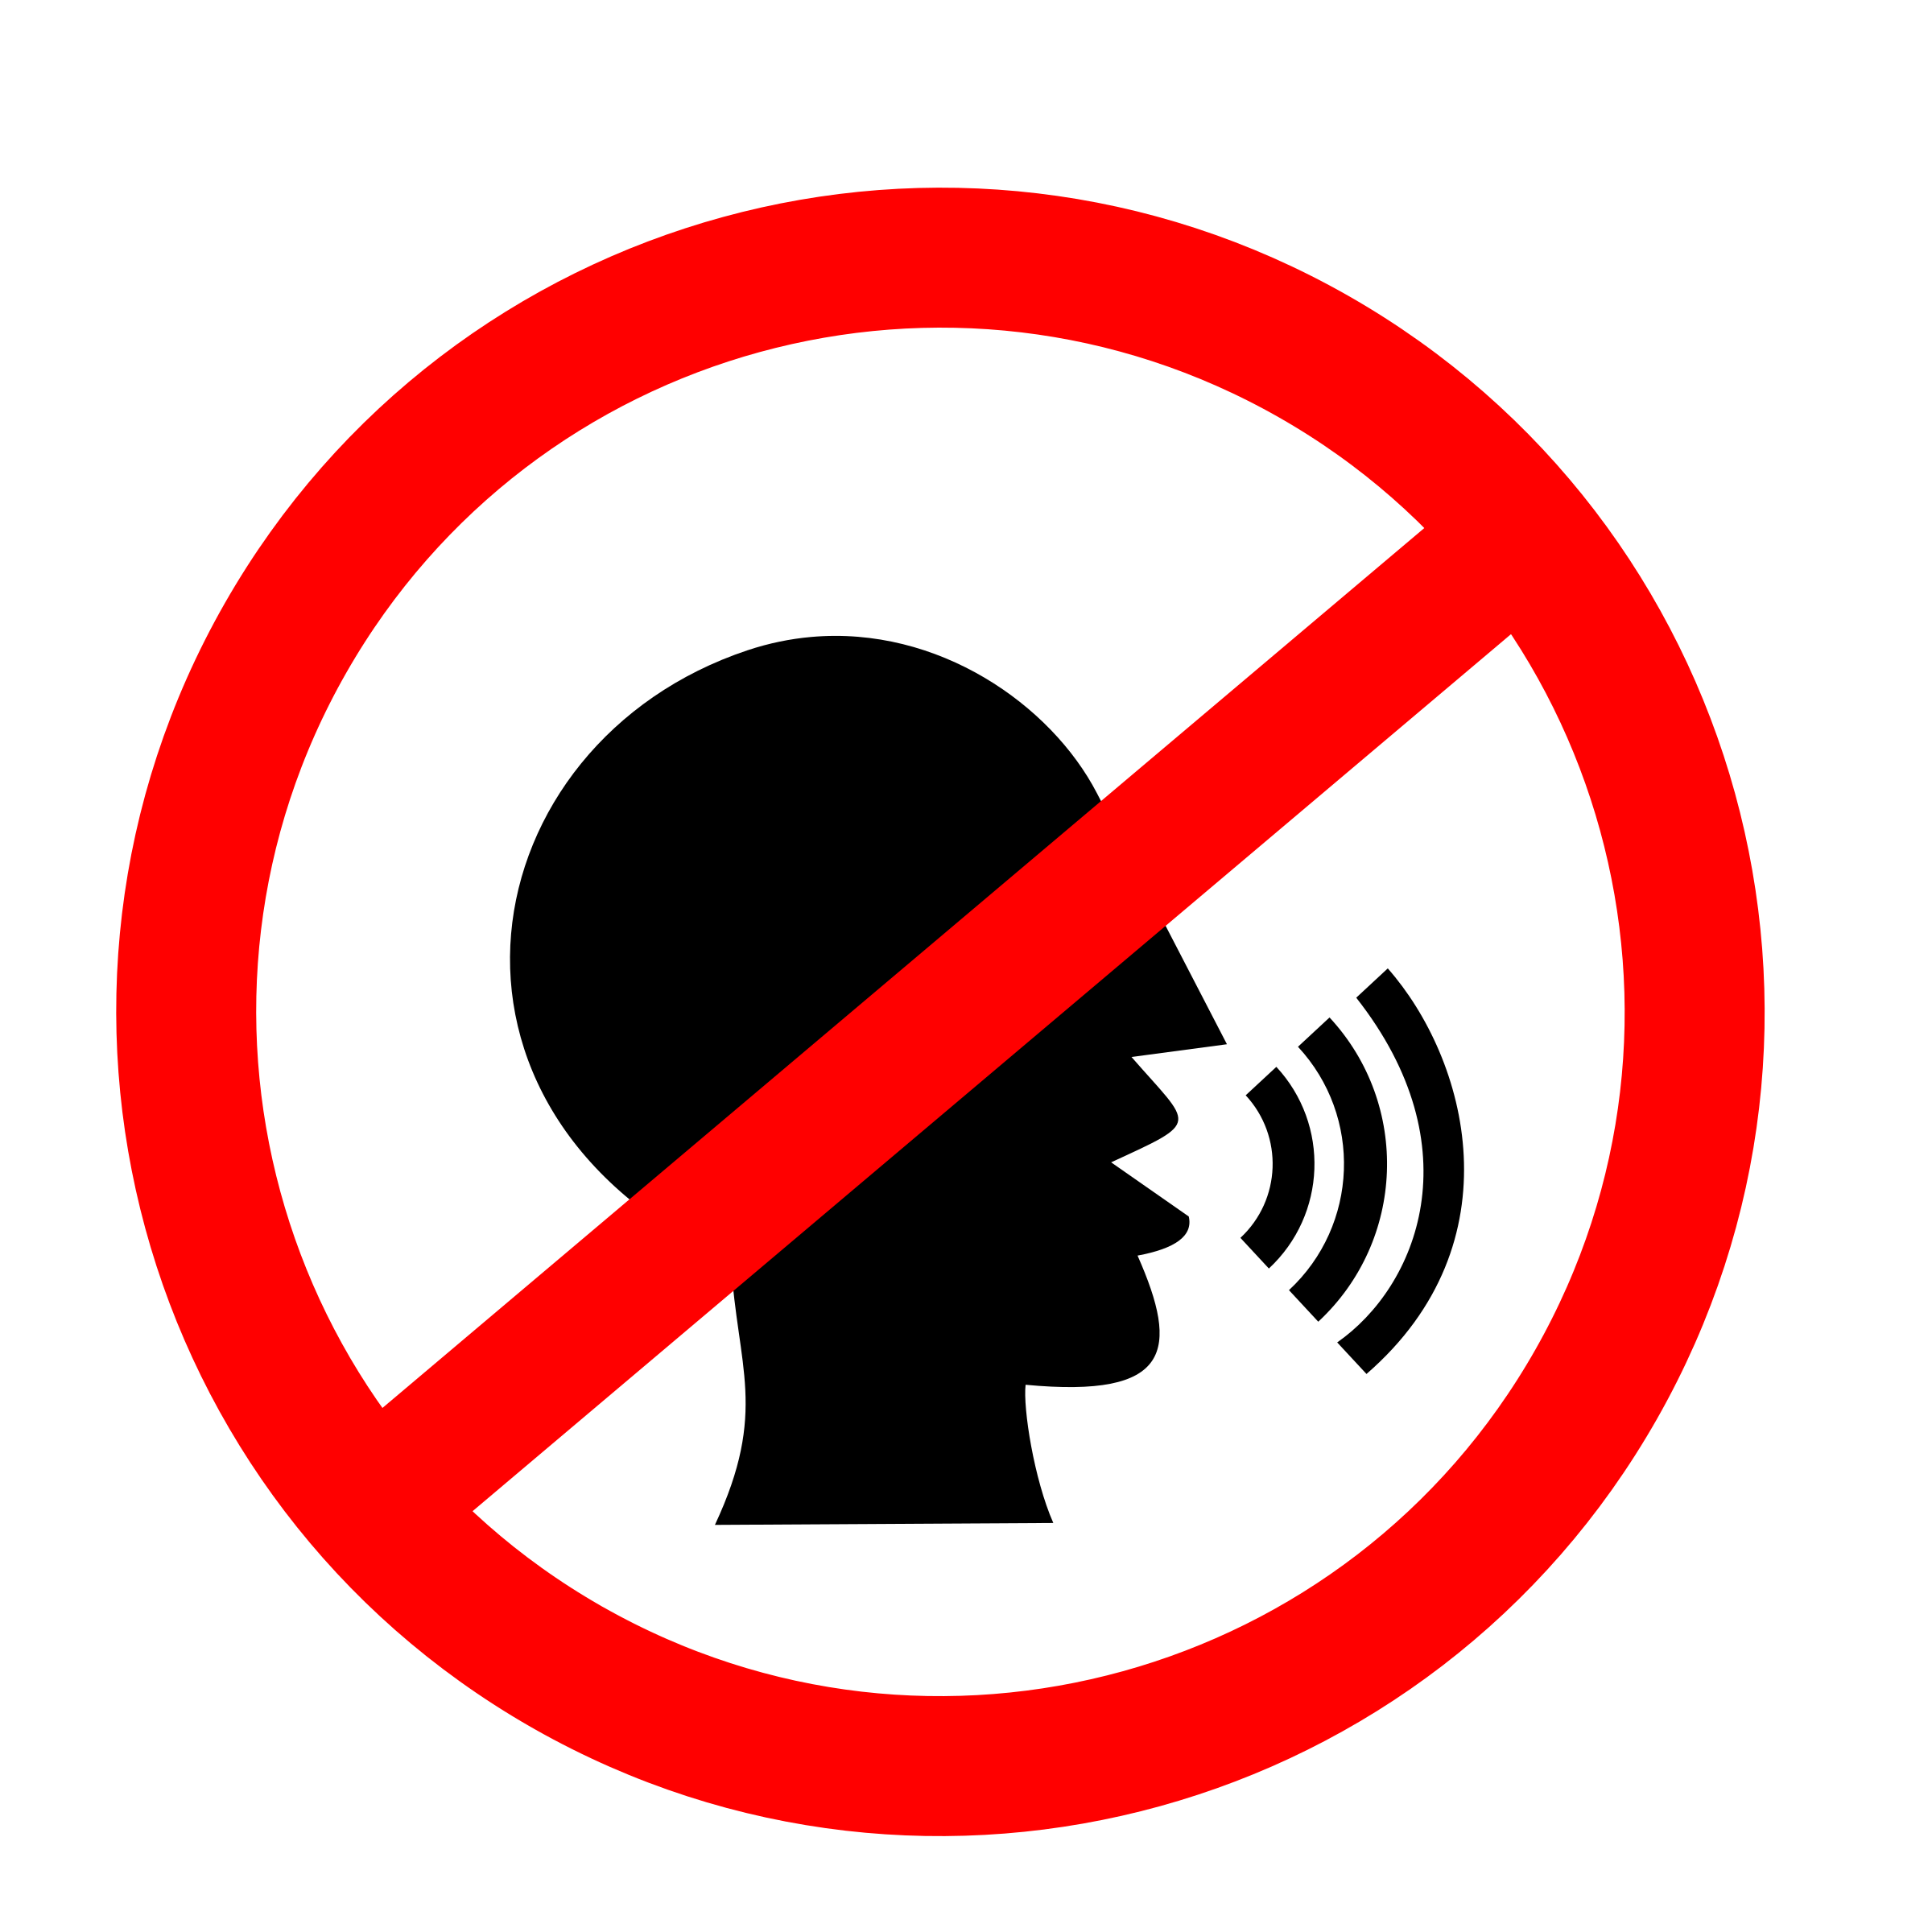 Secret clipart silence sign. No talking full quality